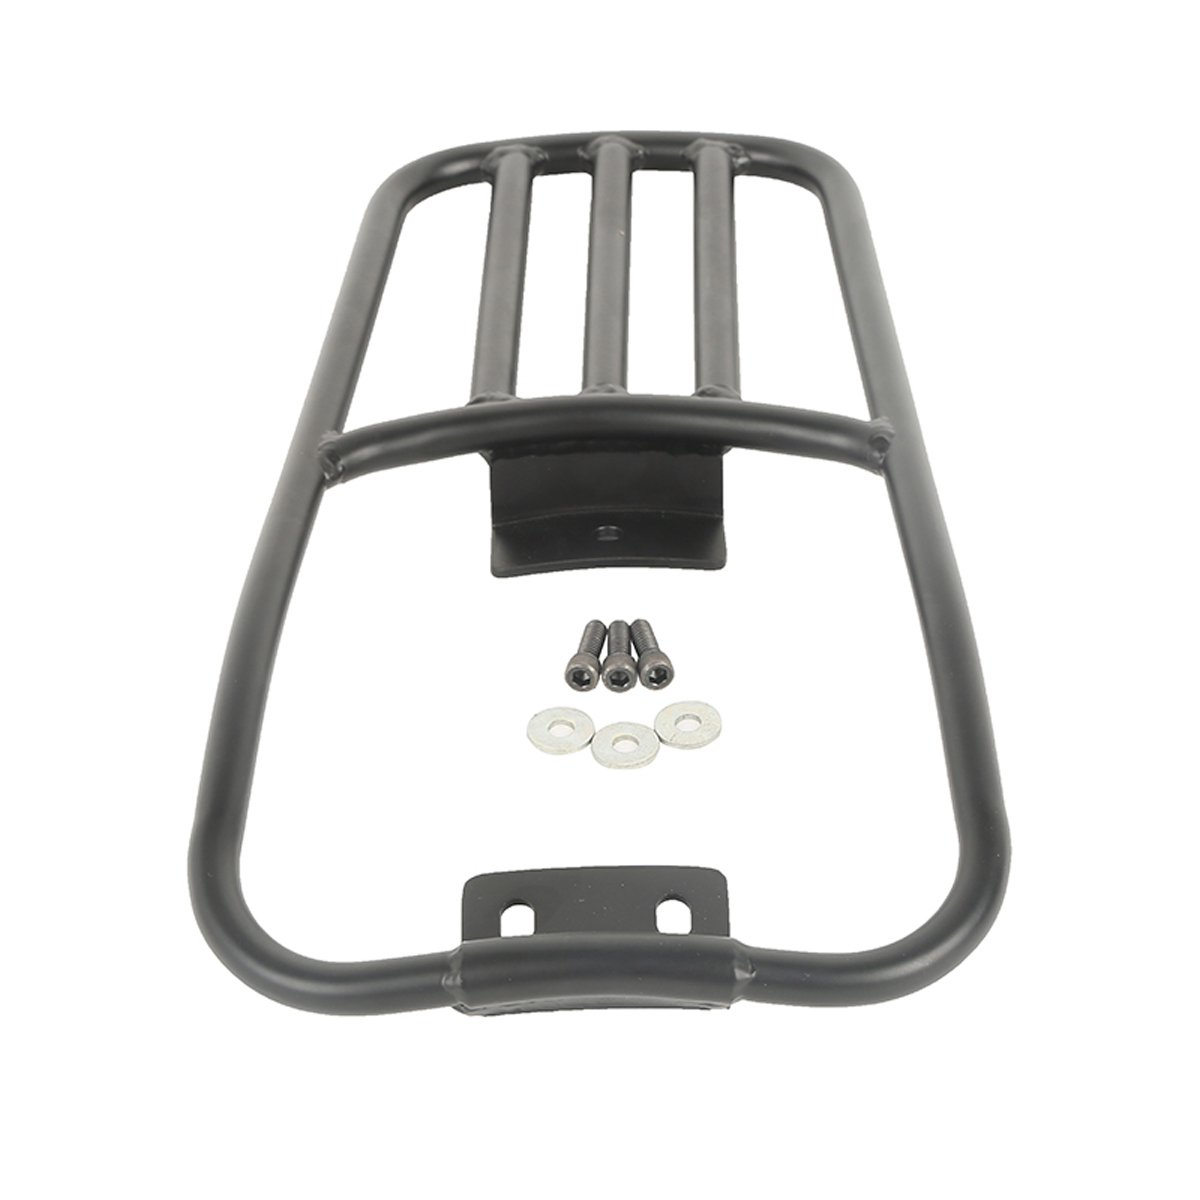 XMT-MOTO Motor 5.6 Rear Fender Luggage Rack For Harley Softail Deluxe 06-18 Fatboy 07-18